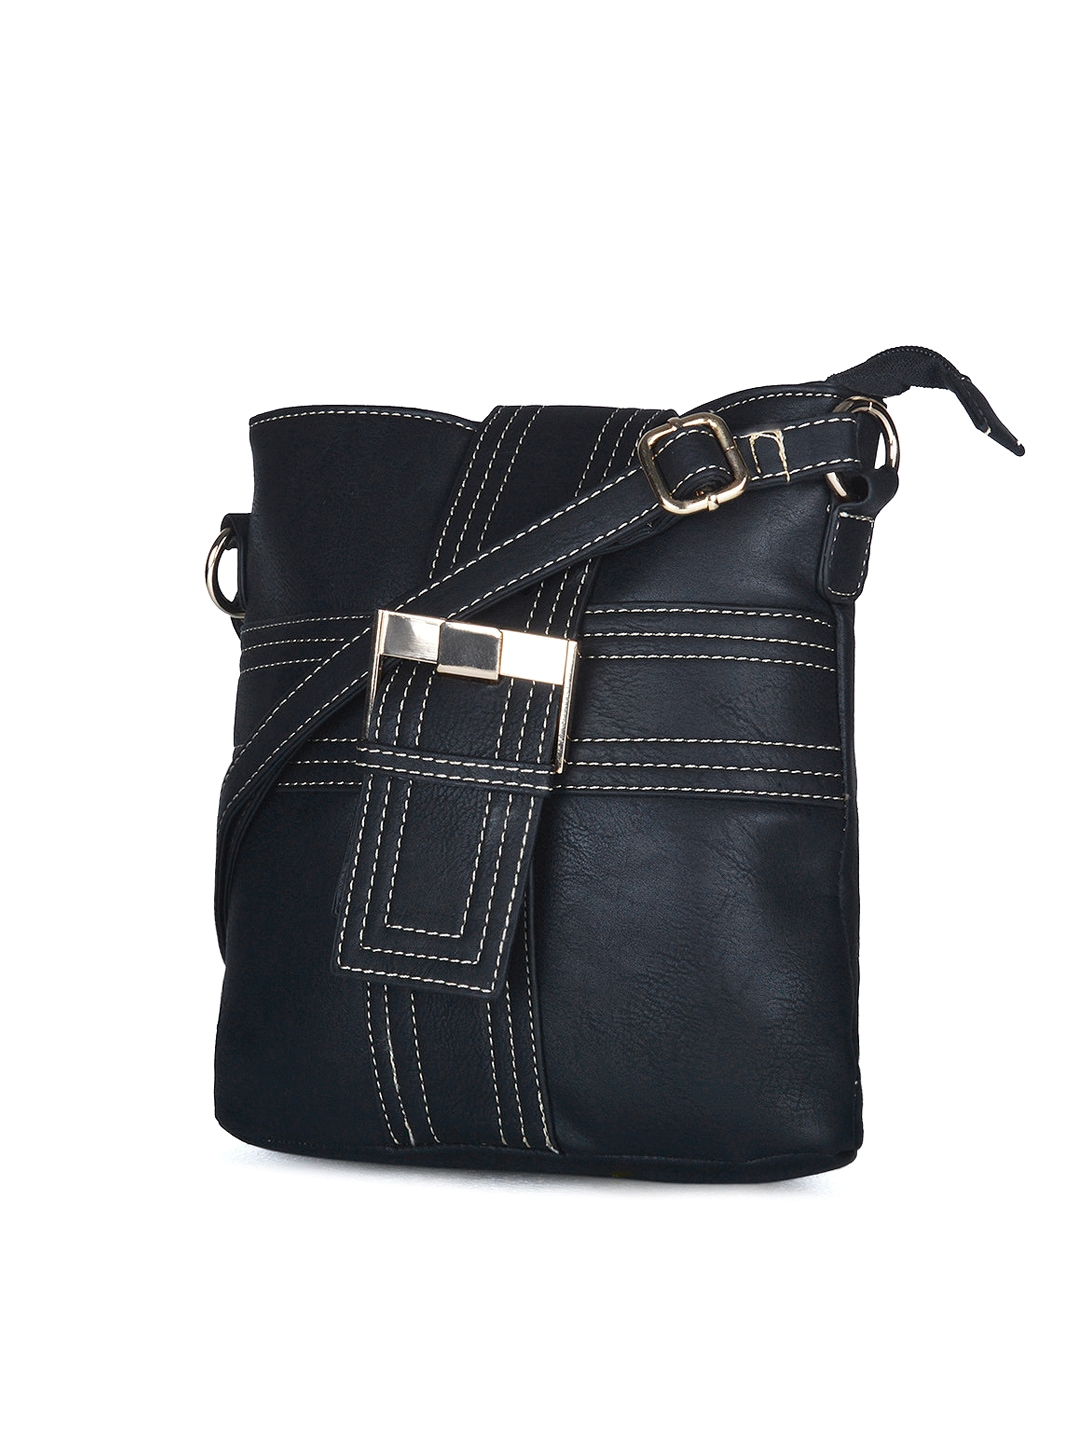 Shop Black Leather Sling Handbags at eBags - experts in bags and accessories since We offer easy returns, expert advice, and millions of customer reviews. At eBags, Free Shipping, Percent Savings, Dollar Savings and Reward offers are all considered to be promotional offers.